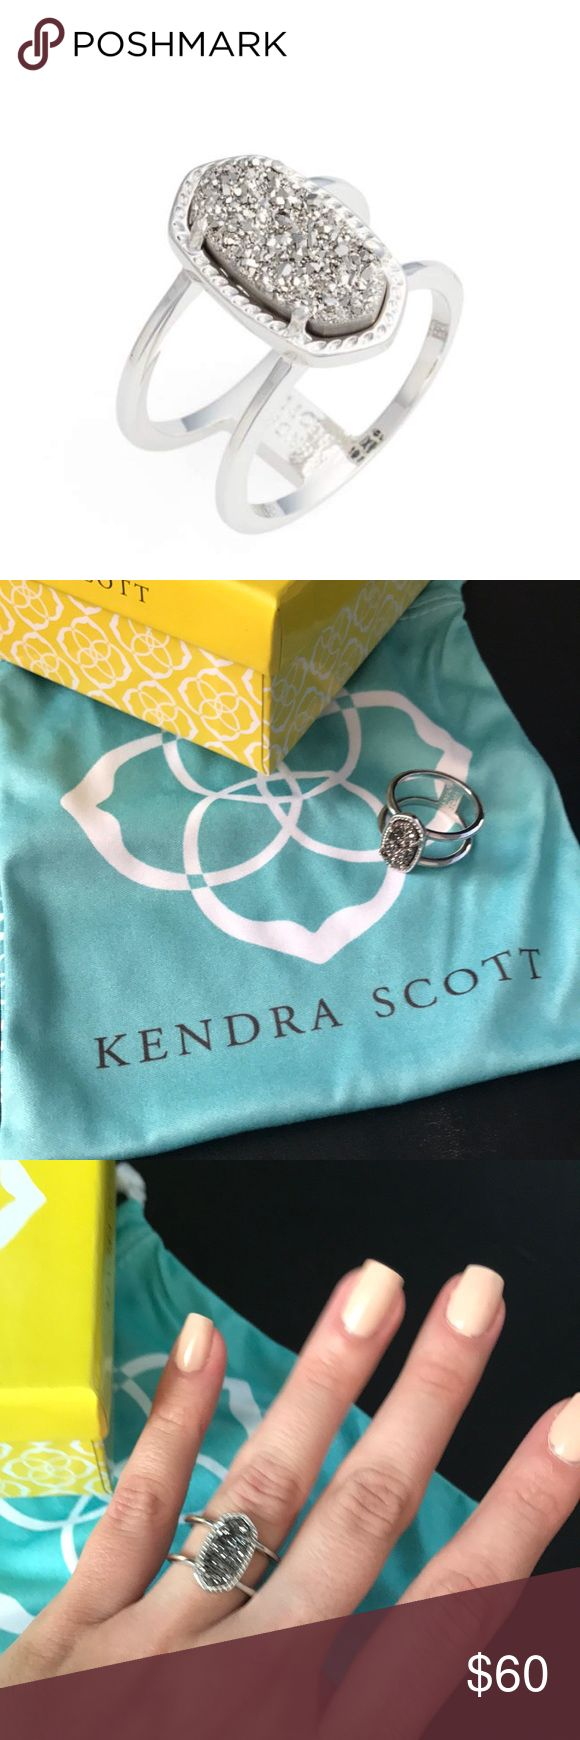 Kendra Scott platinum drusy ring Beautiful statement ring. Worn once, great condition. Comes with box and cloth bag Kendra Scott Jewelry Rings